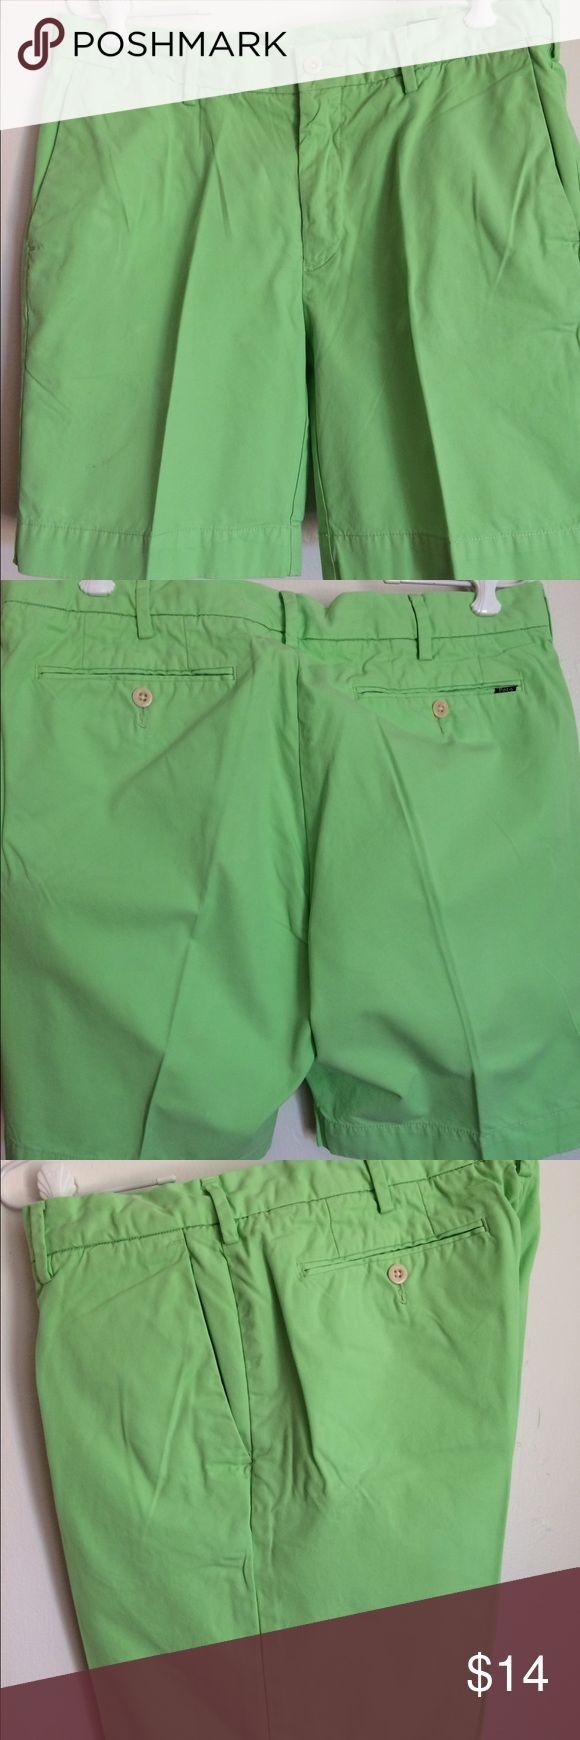 """Polo men's shorts lime green straight fit 33 waist Preppy lime green shorts perfect for the fairway and the beach! Front and back pockets, front zipper and inside button.  Straight fit, flat front.  100% Pima cotton. Note - there is a small cluster of light stains on the right leg as shown in photo. Waist laying flat measures 16 inches, inseam is 8 inches, front rise is 9 1/2 inches and back rise is 15"""" Polo by Ralph Lauren Shorts Flat Front"""